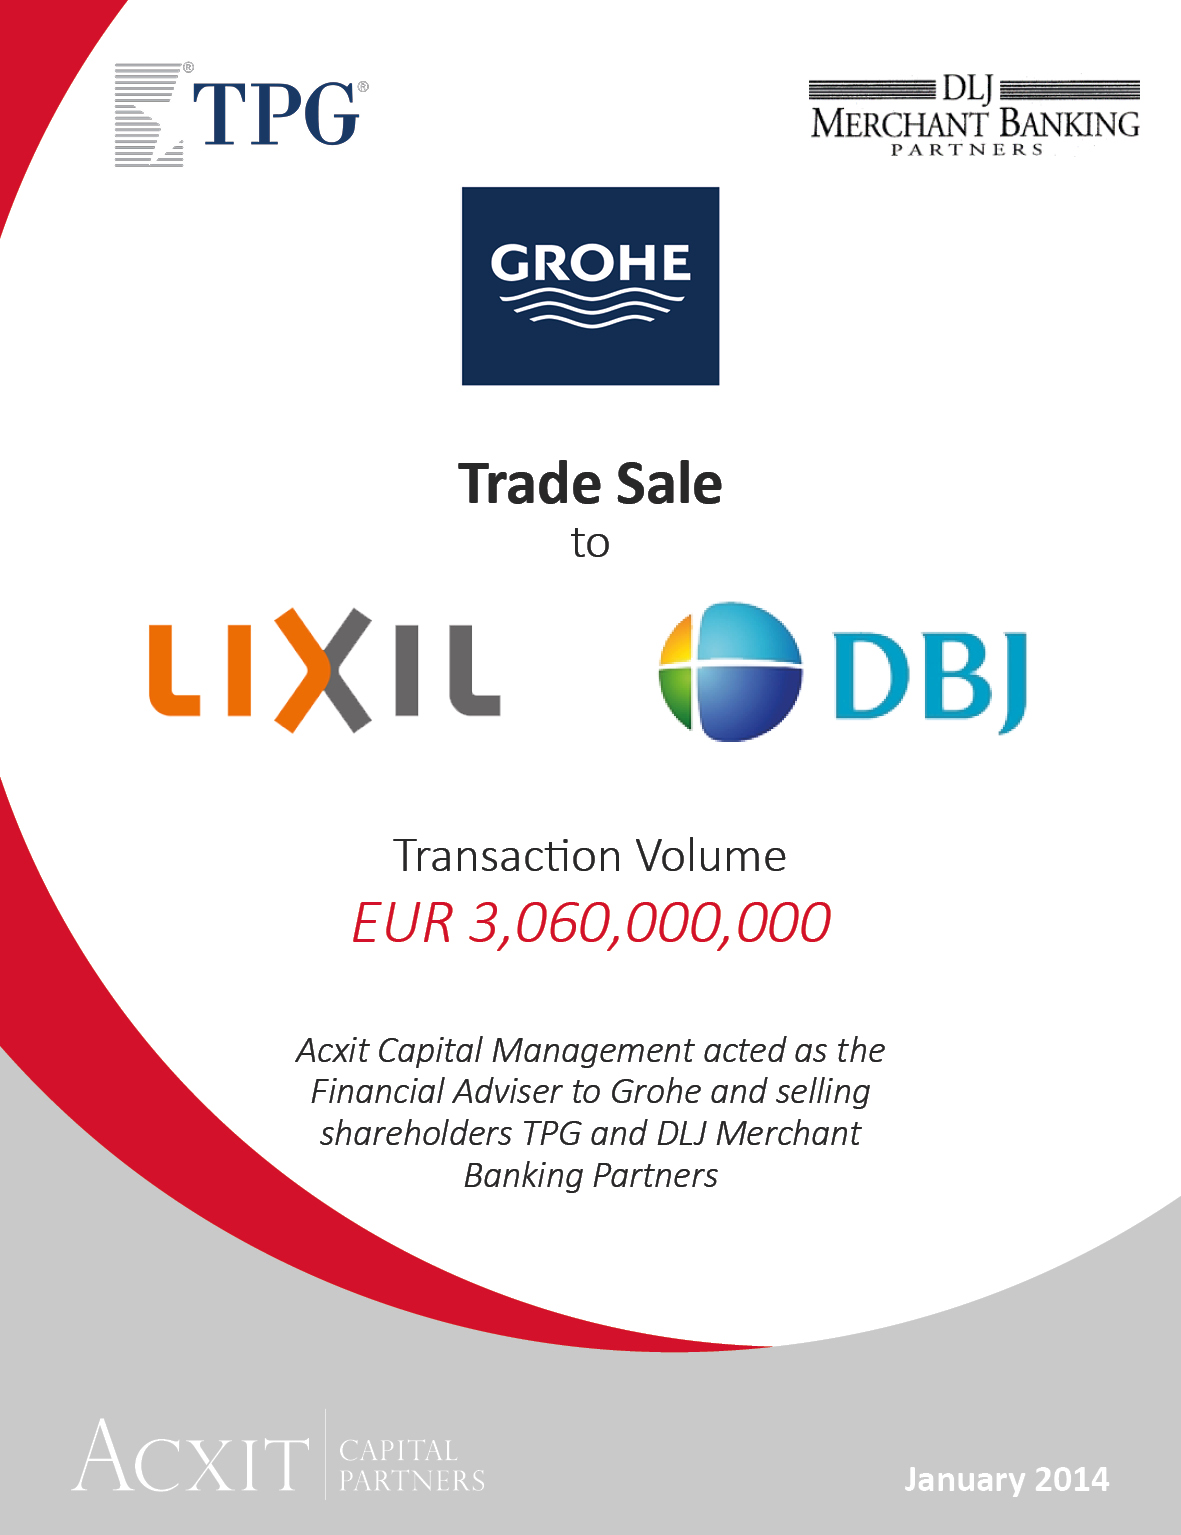 Grohe sold to LIXIL